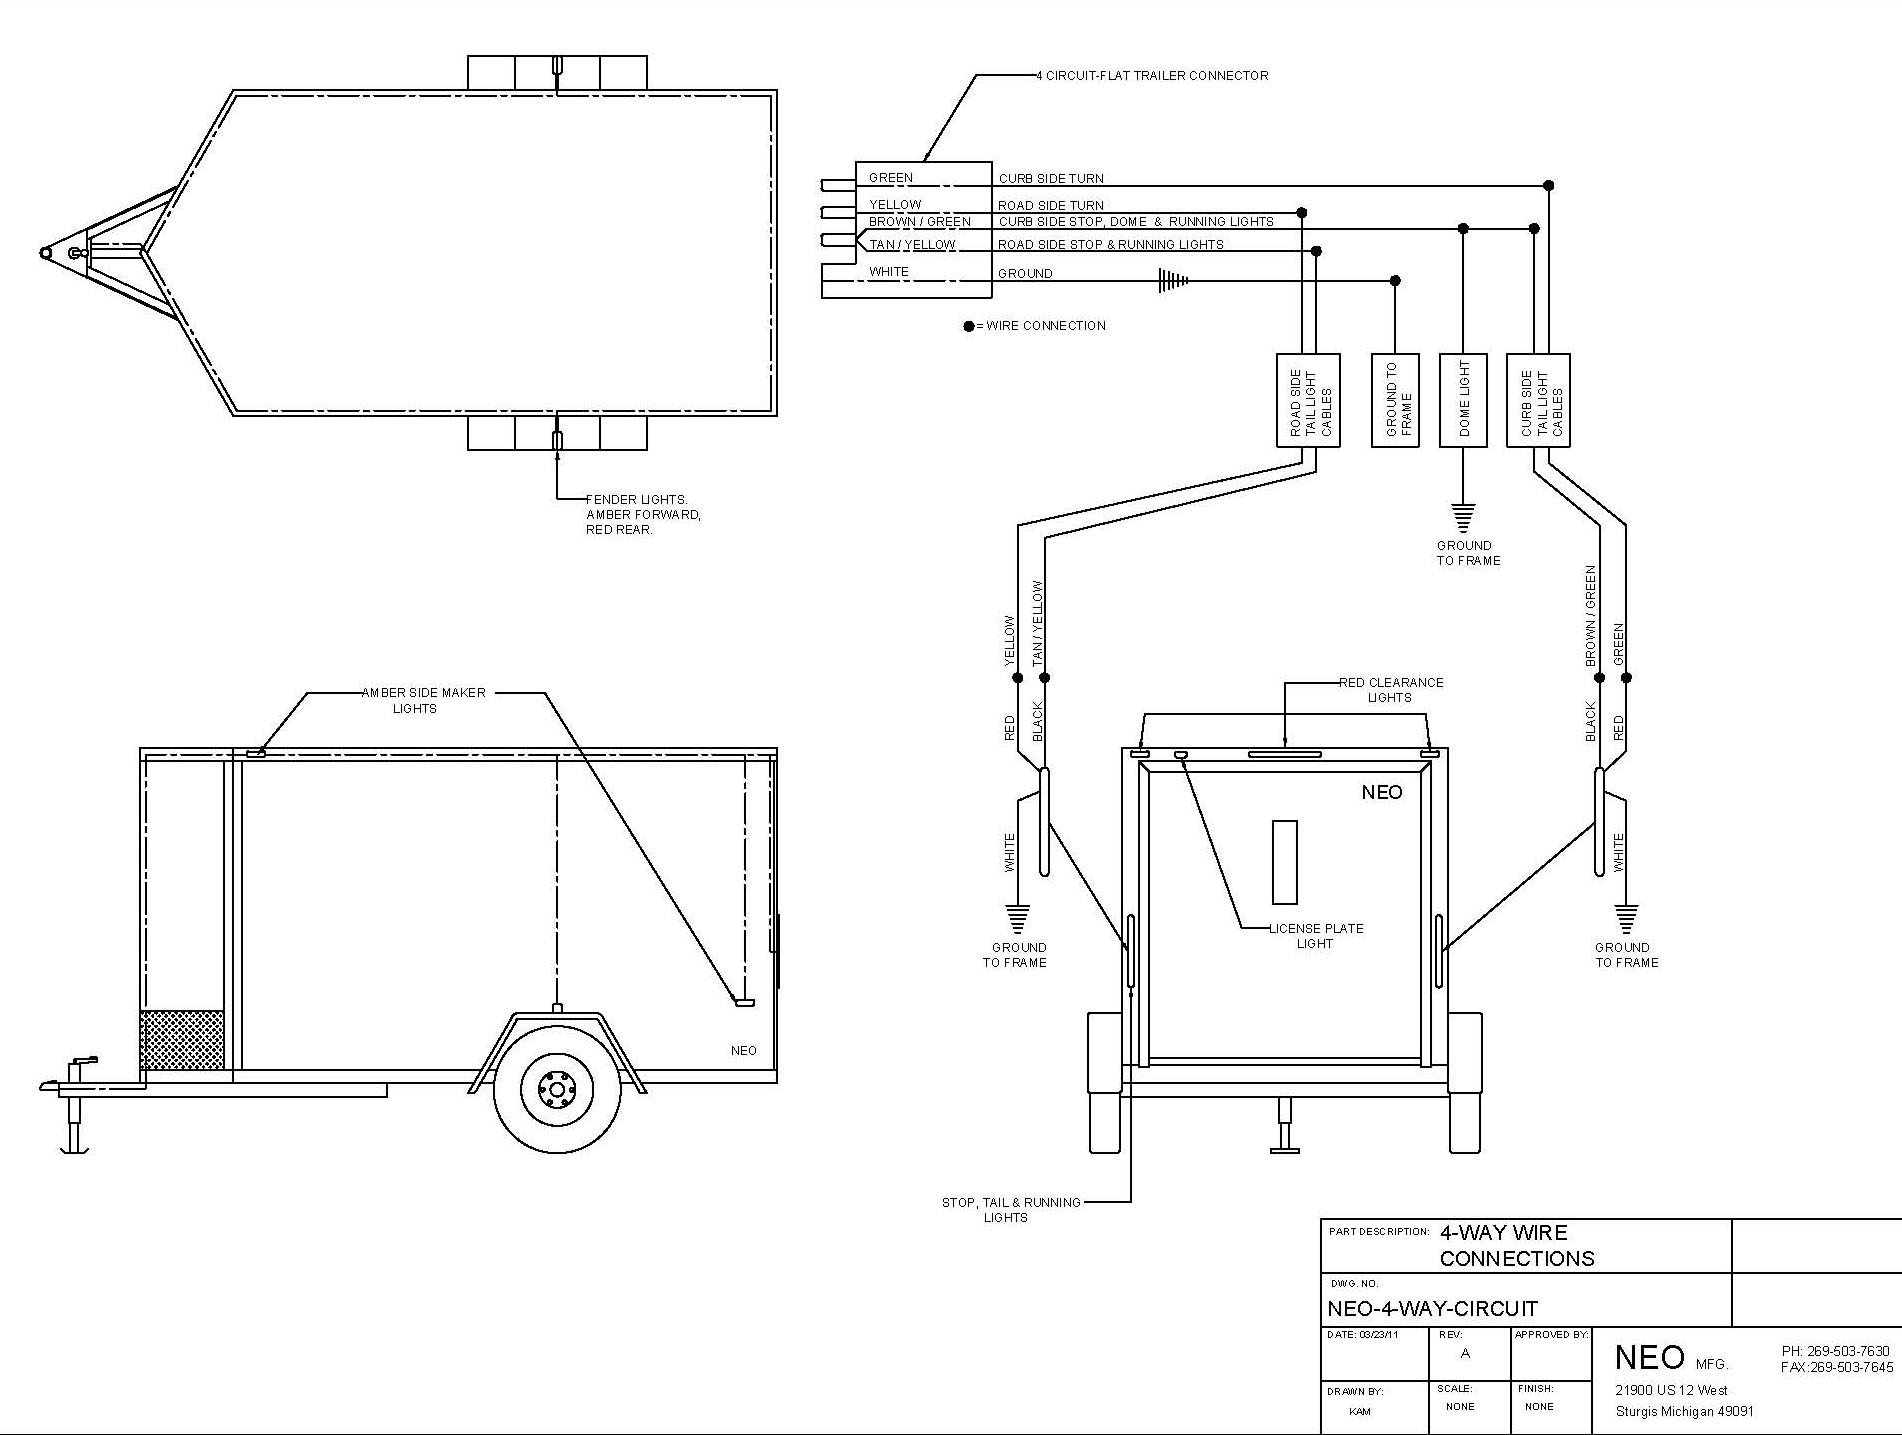 Neo Trailers Manual Dexter Axle Electric Brakes Wiring Dexter Axle Wiring  Schematic